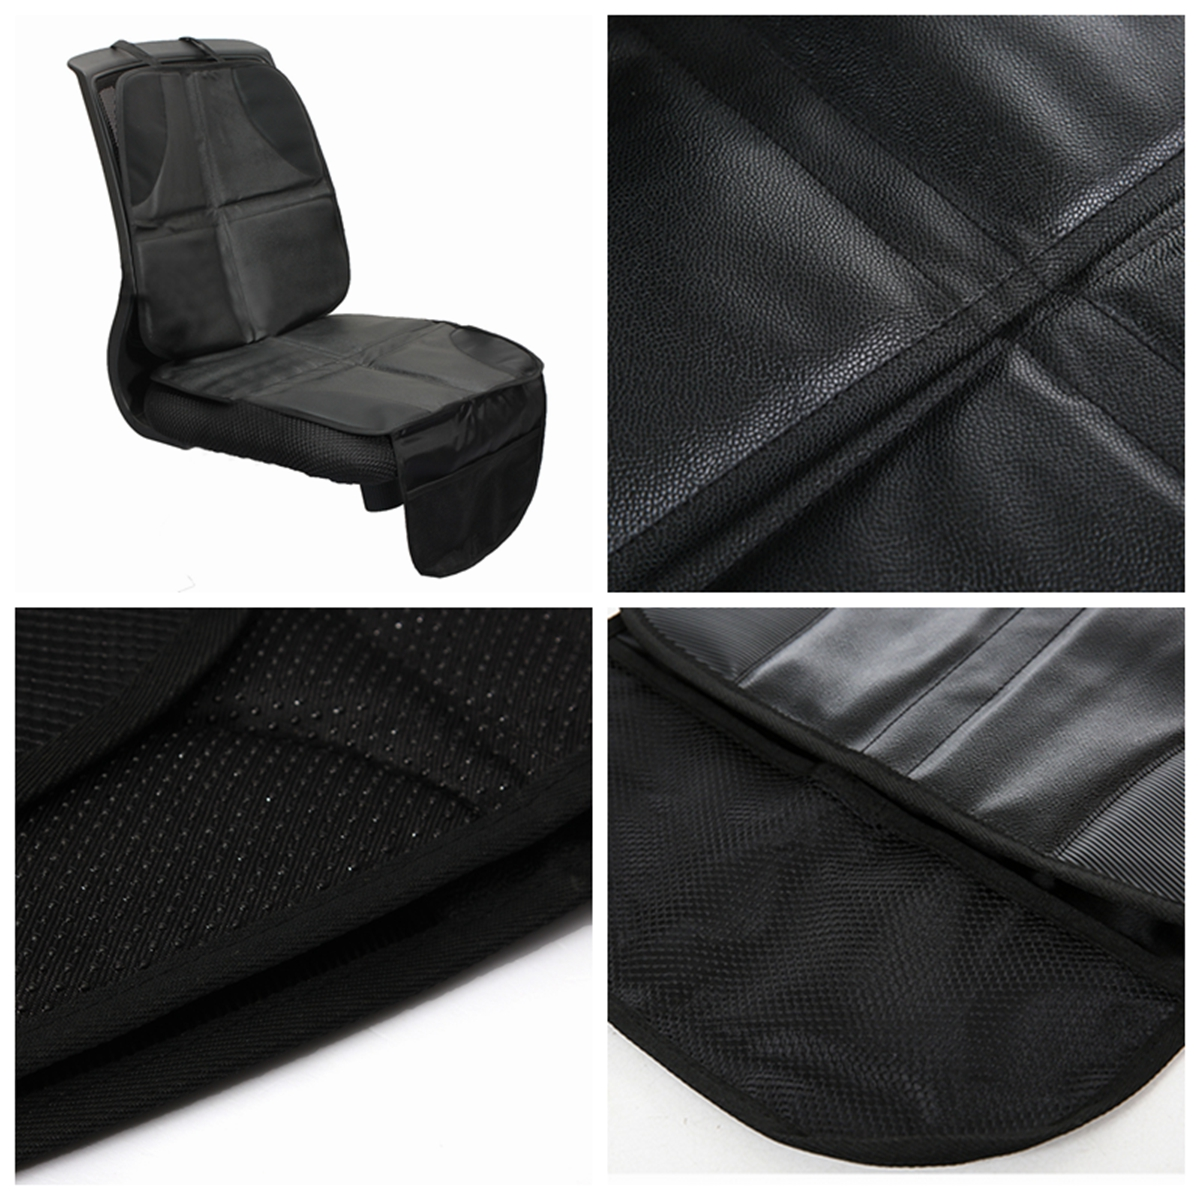 Auto Child Infant Seat Saver Easy Clean Protector Safety